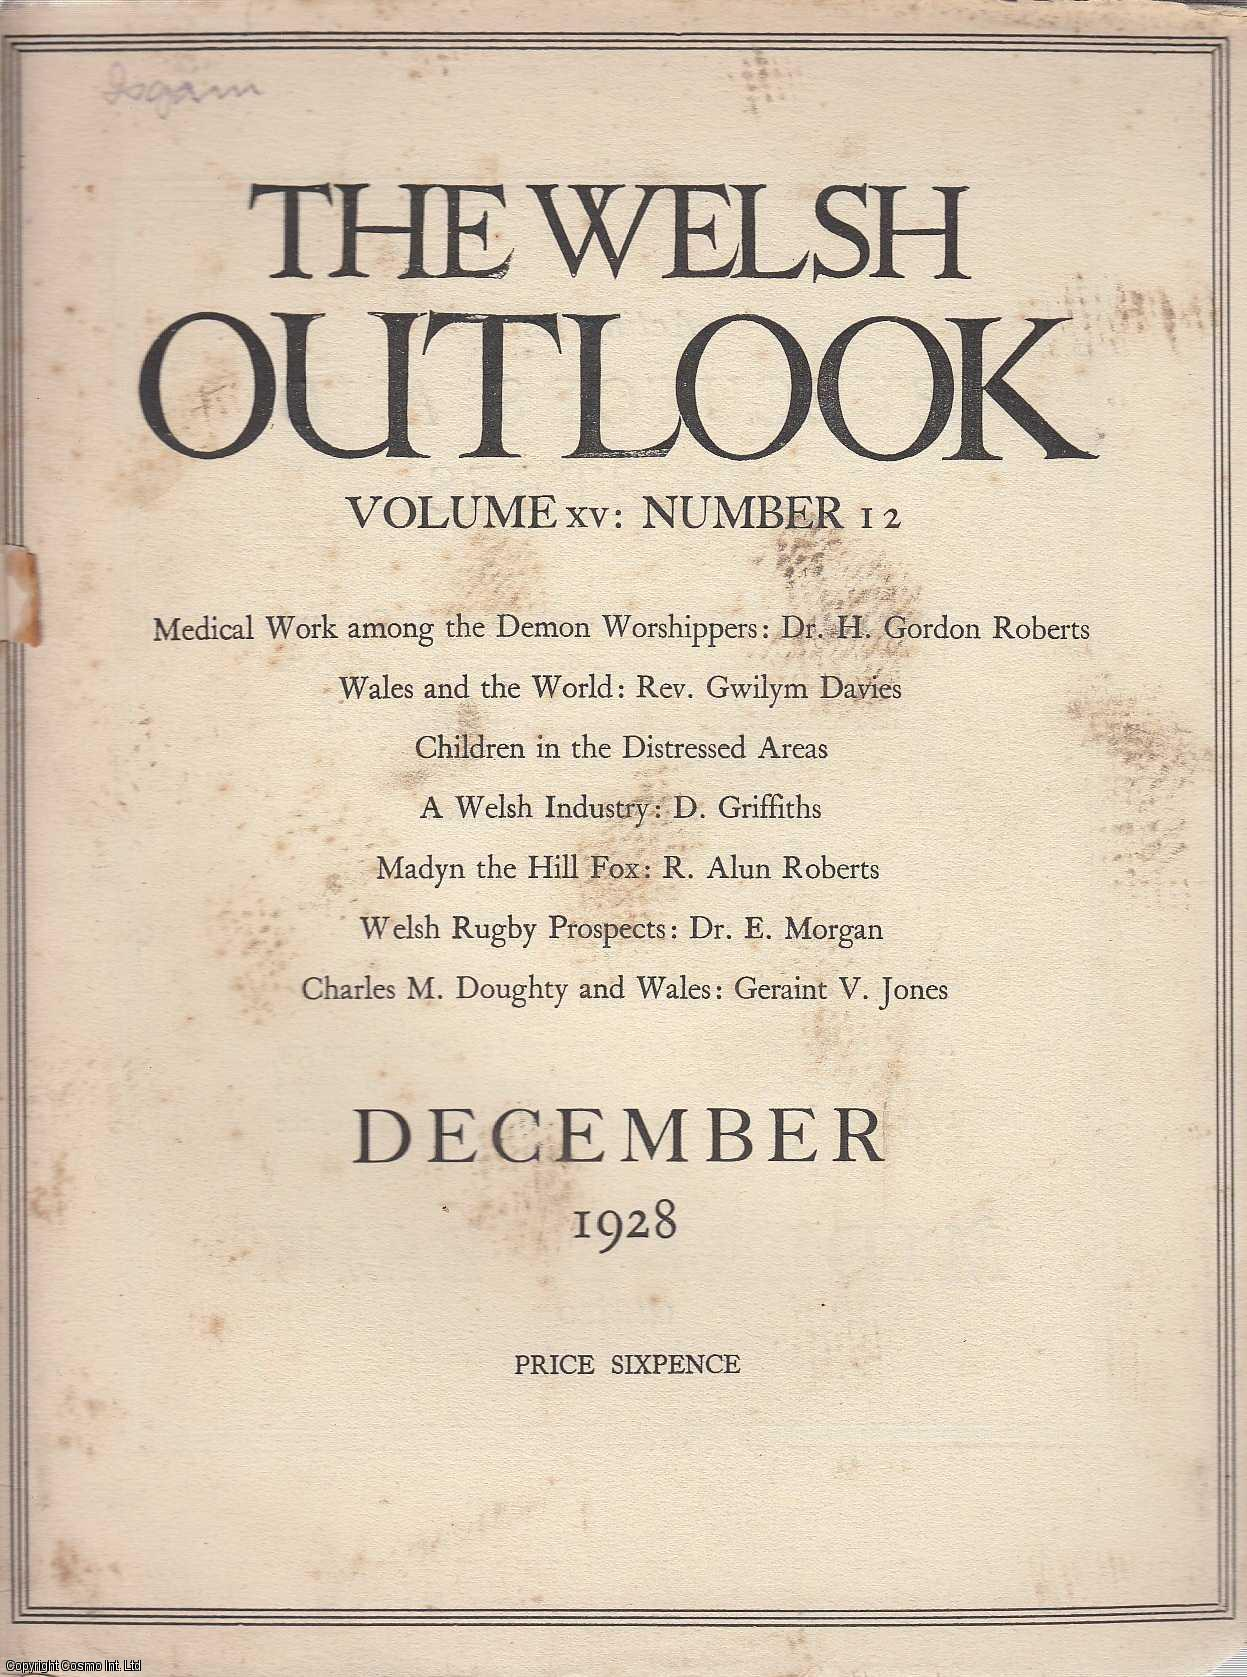 The Welsh Outlook. A Monthly Journal of National Social Progress. December, 1928. Contains; Medical Work among The Demon Worshippers by Dr. H. Gordon Roberts; Wales and The World by Rev. Gwilym Davies; Children in The Distressed Areas; A Welsh Industry by D. Griffiths; Madyn The Hill Fox by R. Alun Roberts; Books Children like best by E.T. Owen & J. Lloyd Jones; Welsh Rugby Prospects by Dr. E. Morgan; Sheep on The Hills by Morris Marples; Little Tales by T. Hughes Jones; Charles M. Doughty and Wales by Geraint V. Jones; A South Wales Miner in Western Canada., Thomas Jones (Editor)